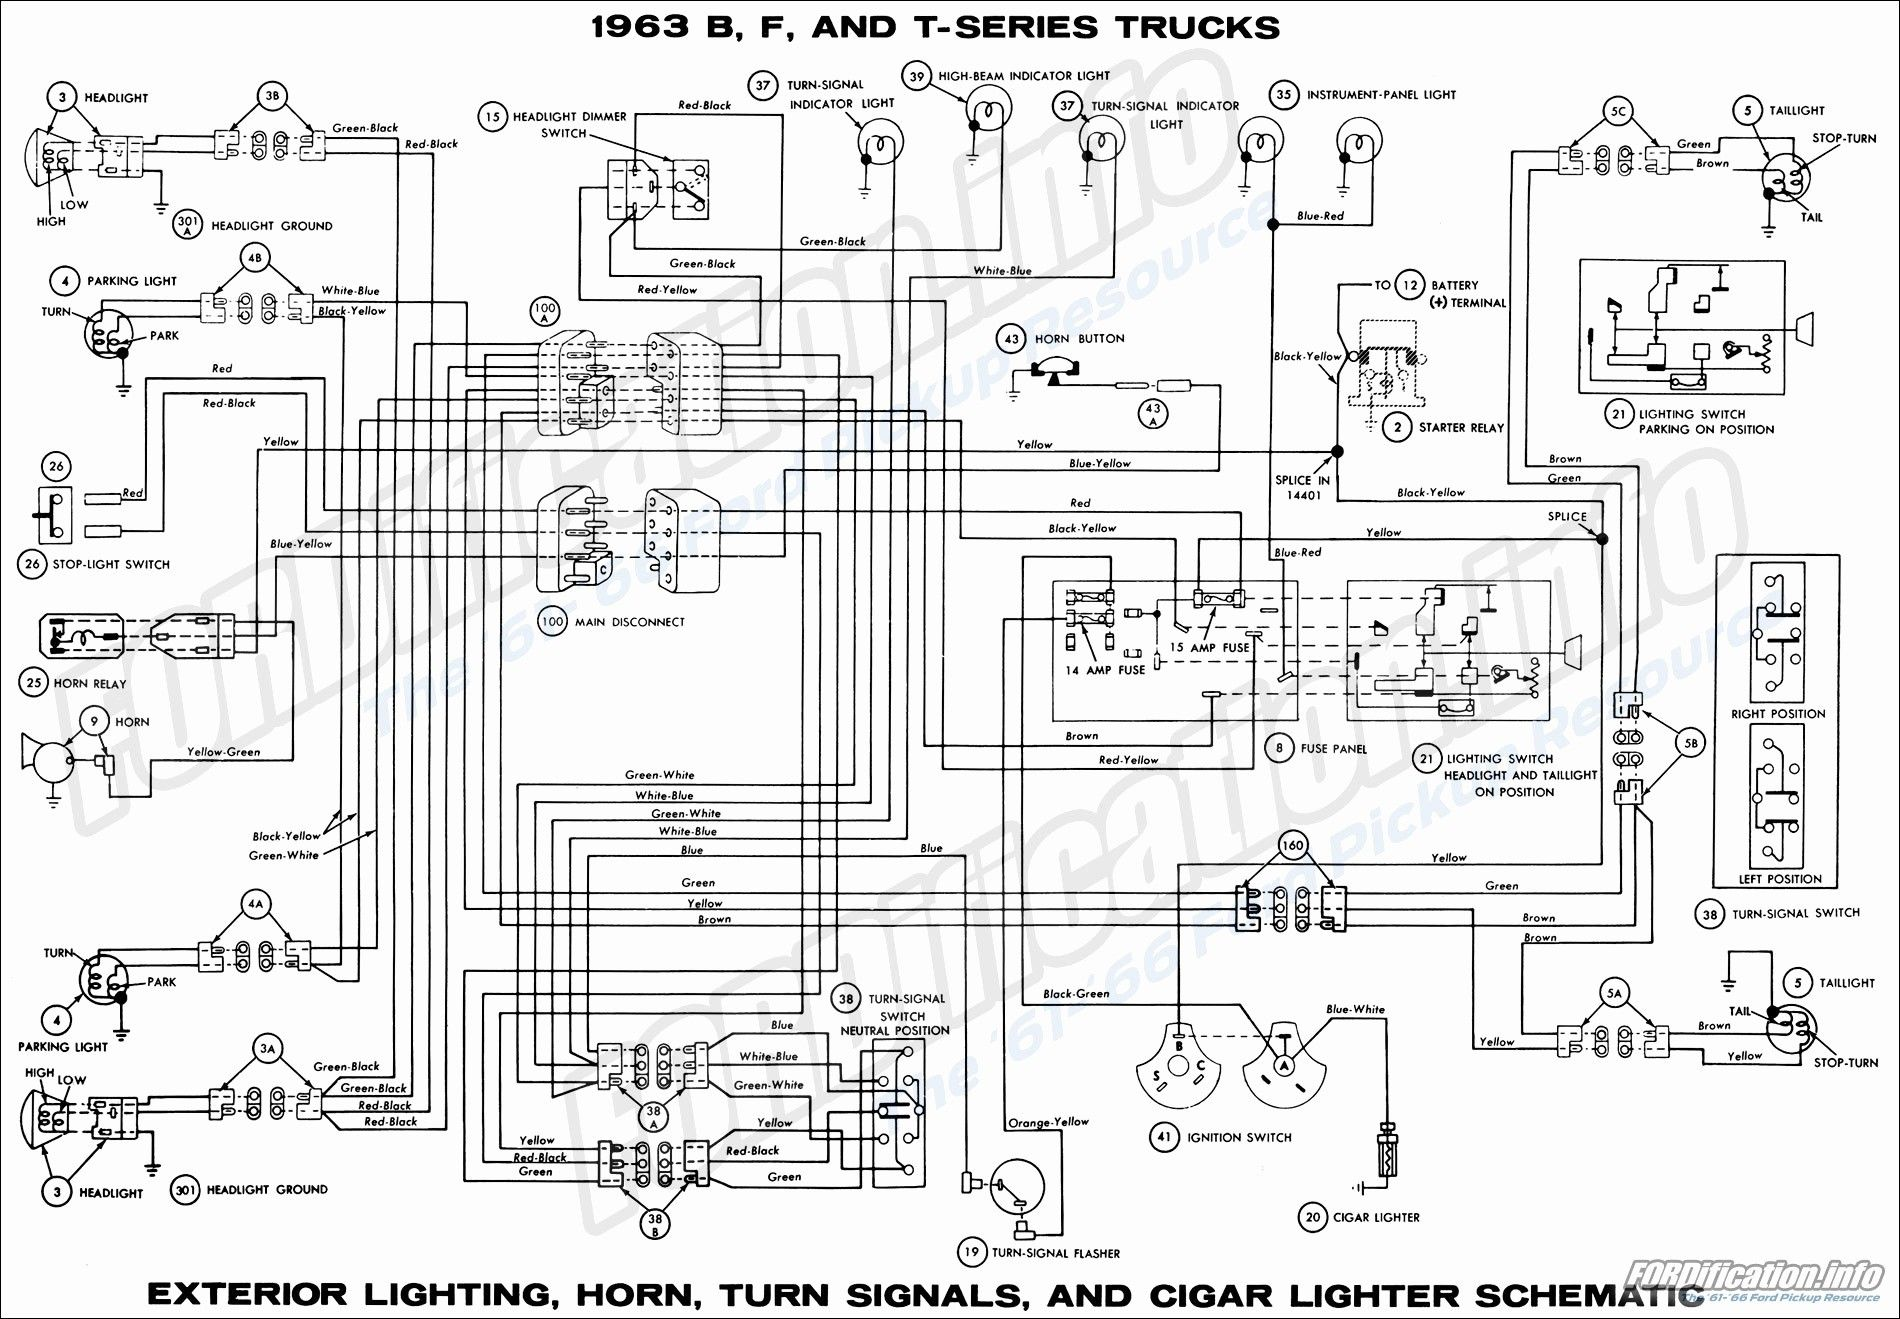 New 2002 Dodge Ram 1500 Headlight Wiring Diagram #diagram